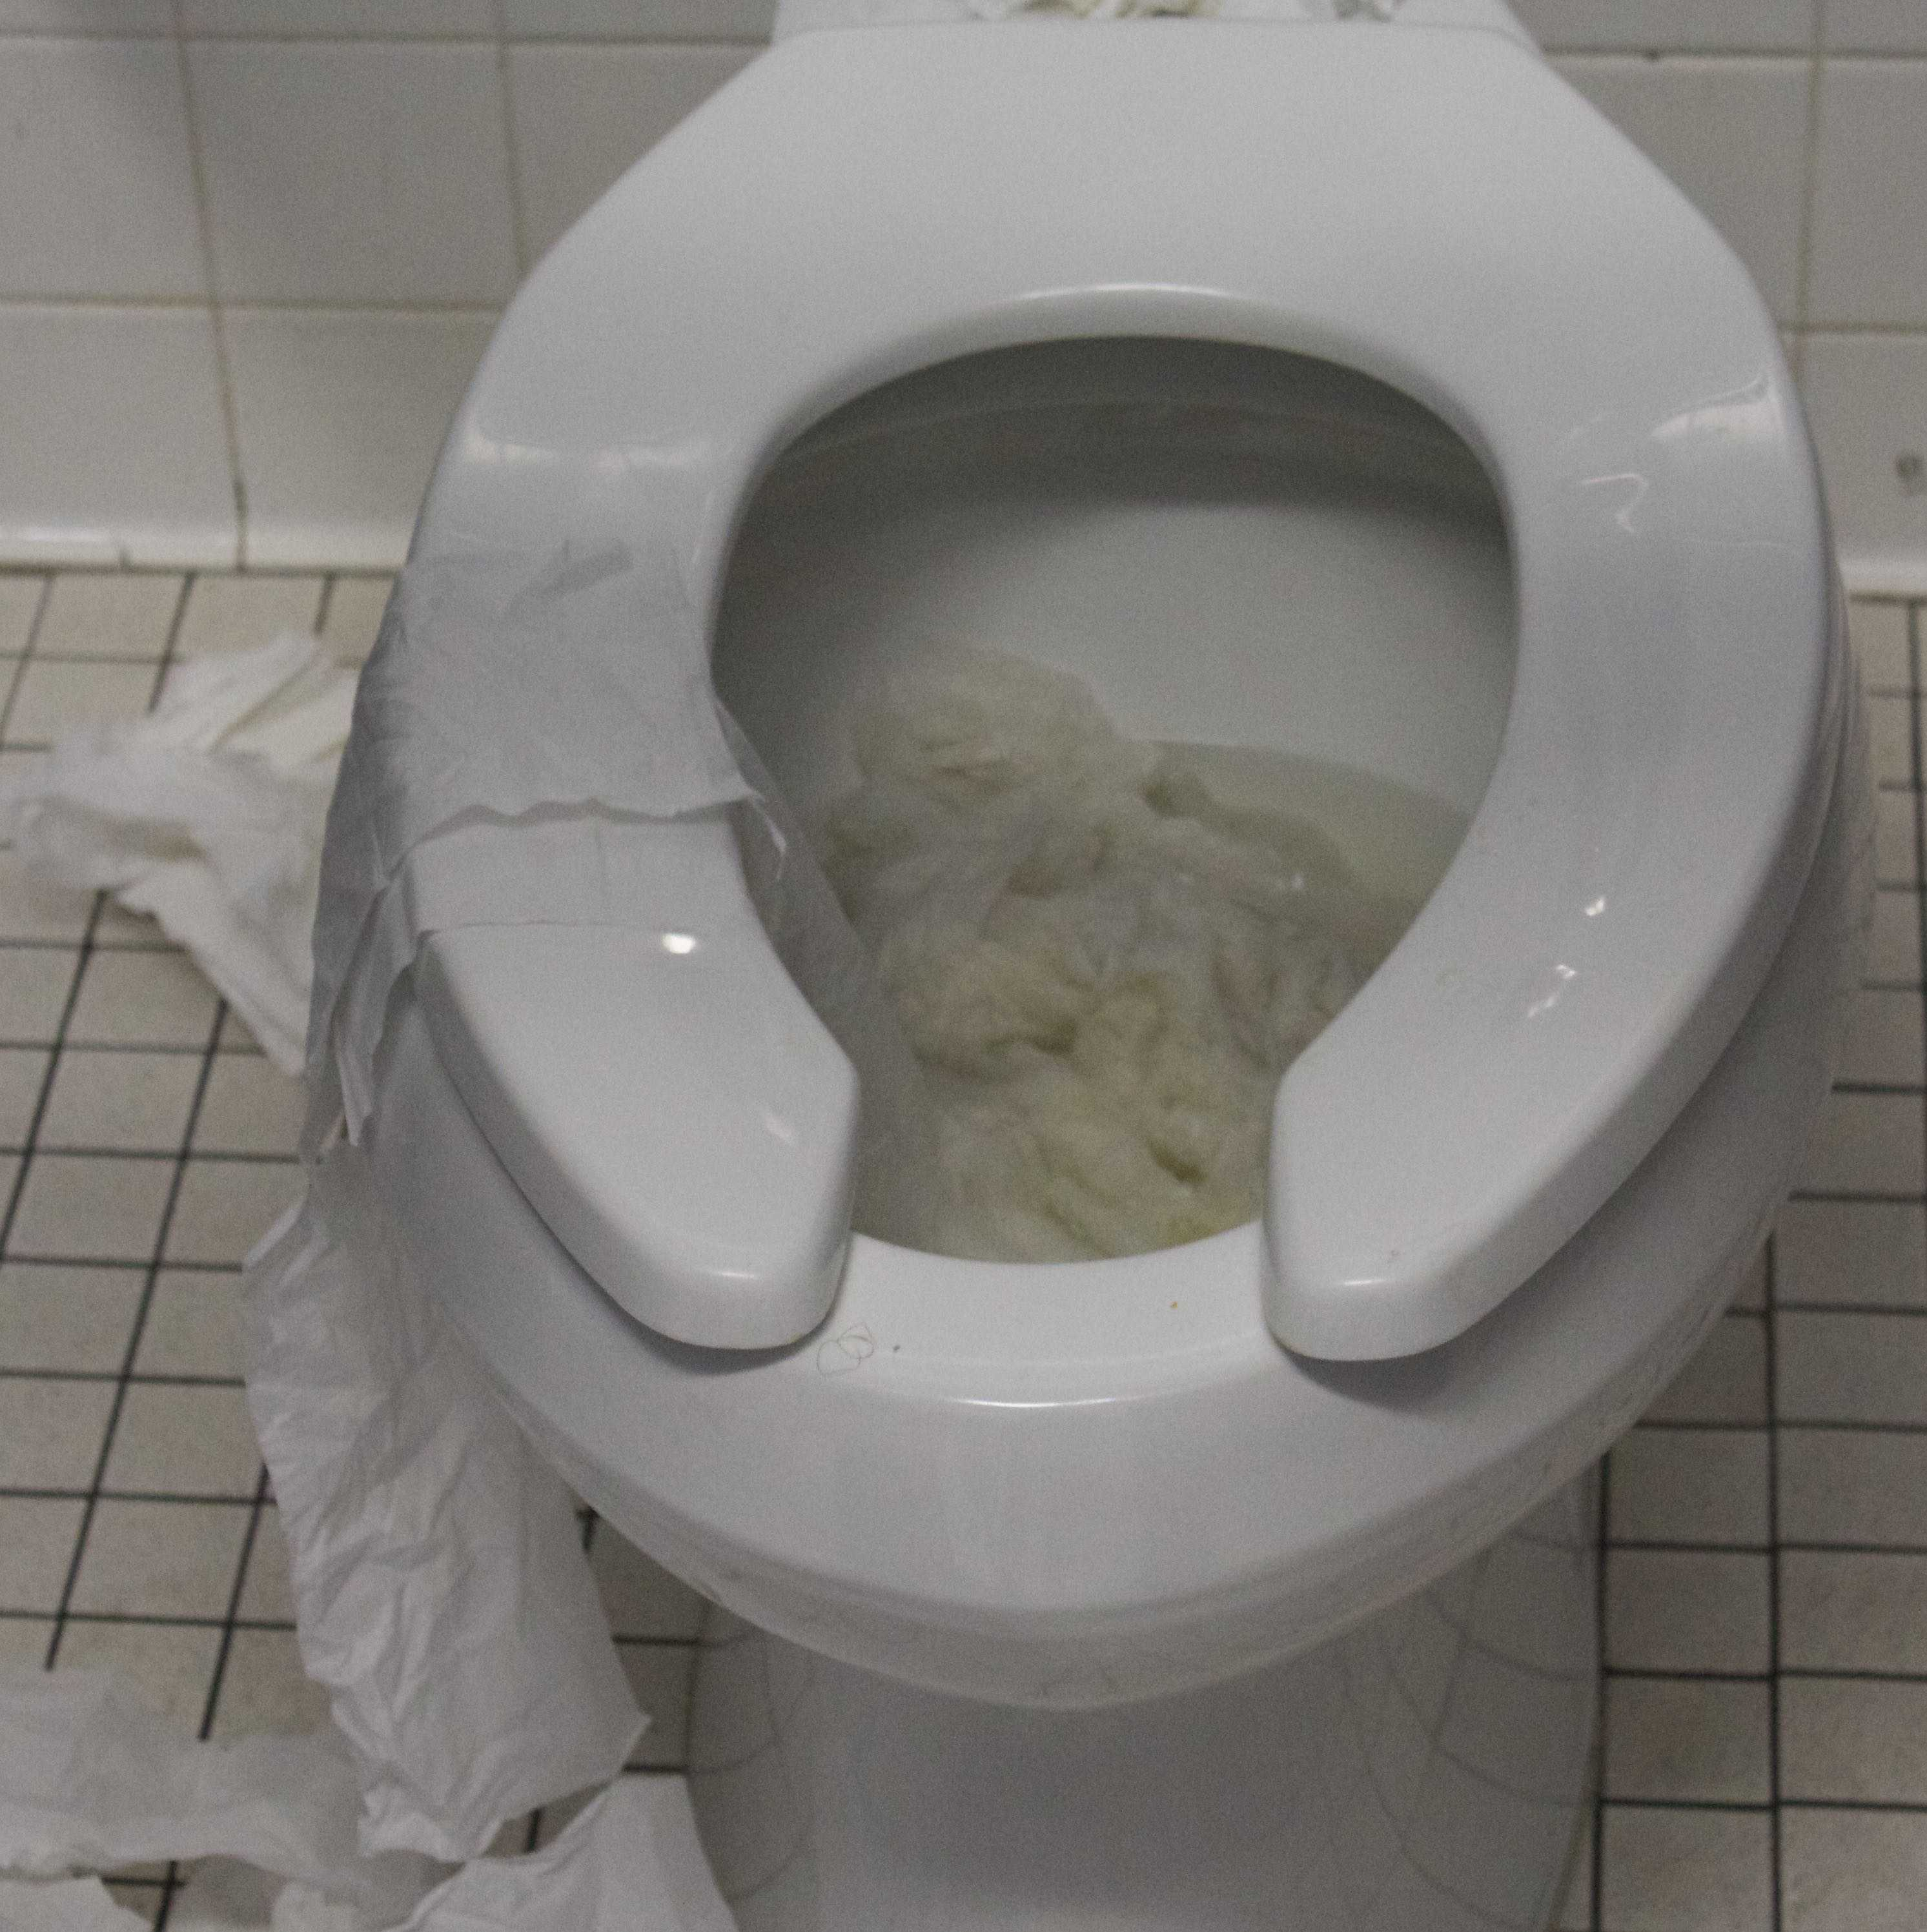 The boys restroom at Venice High School.